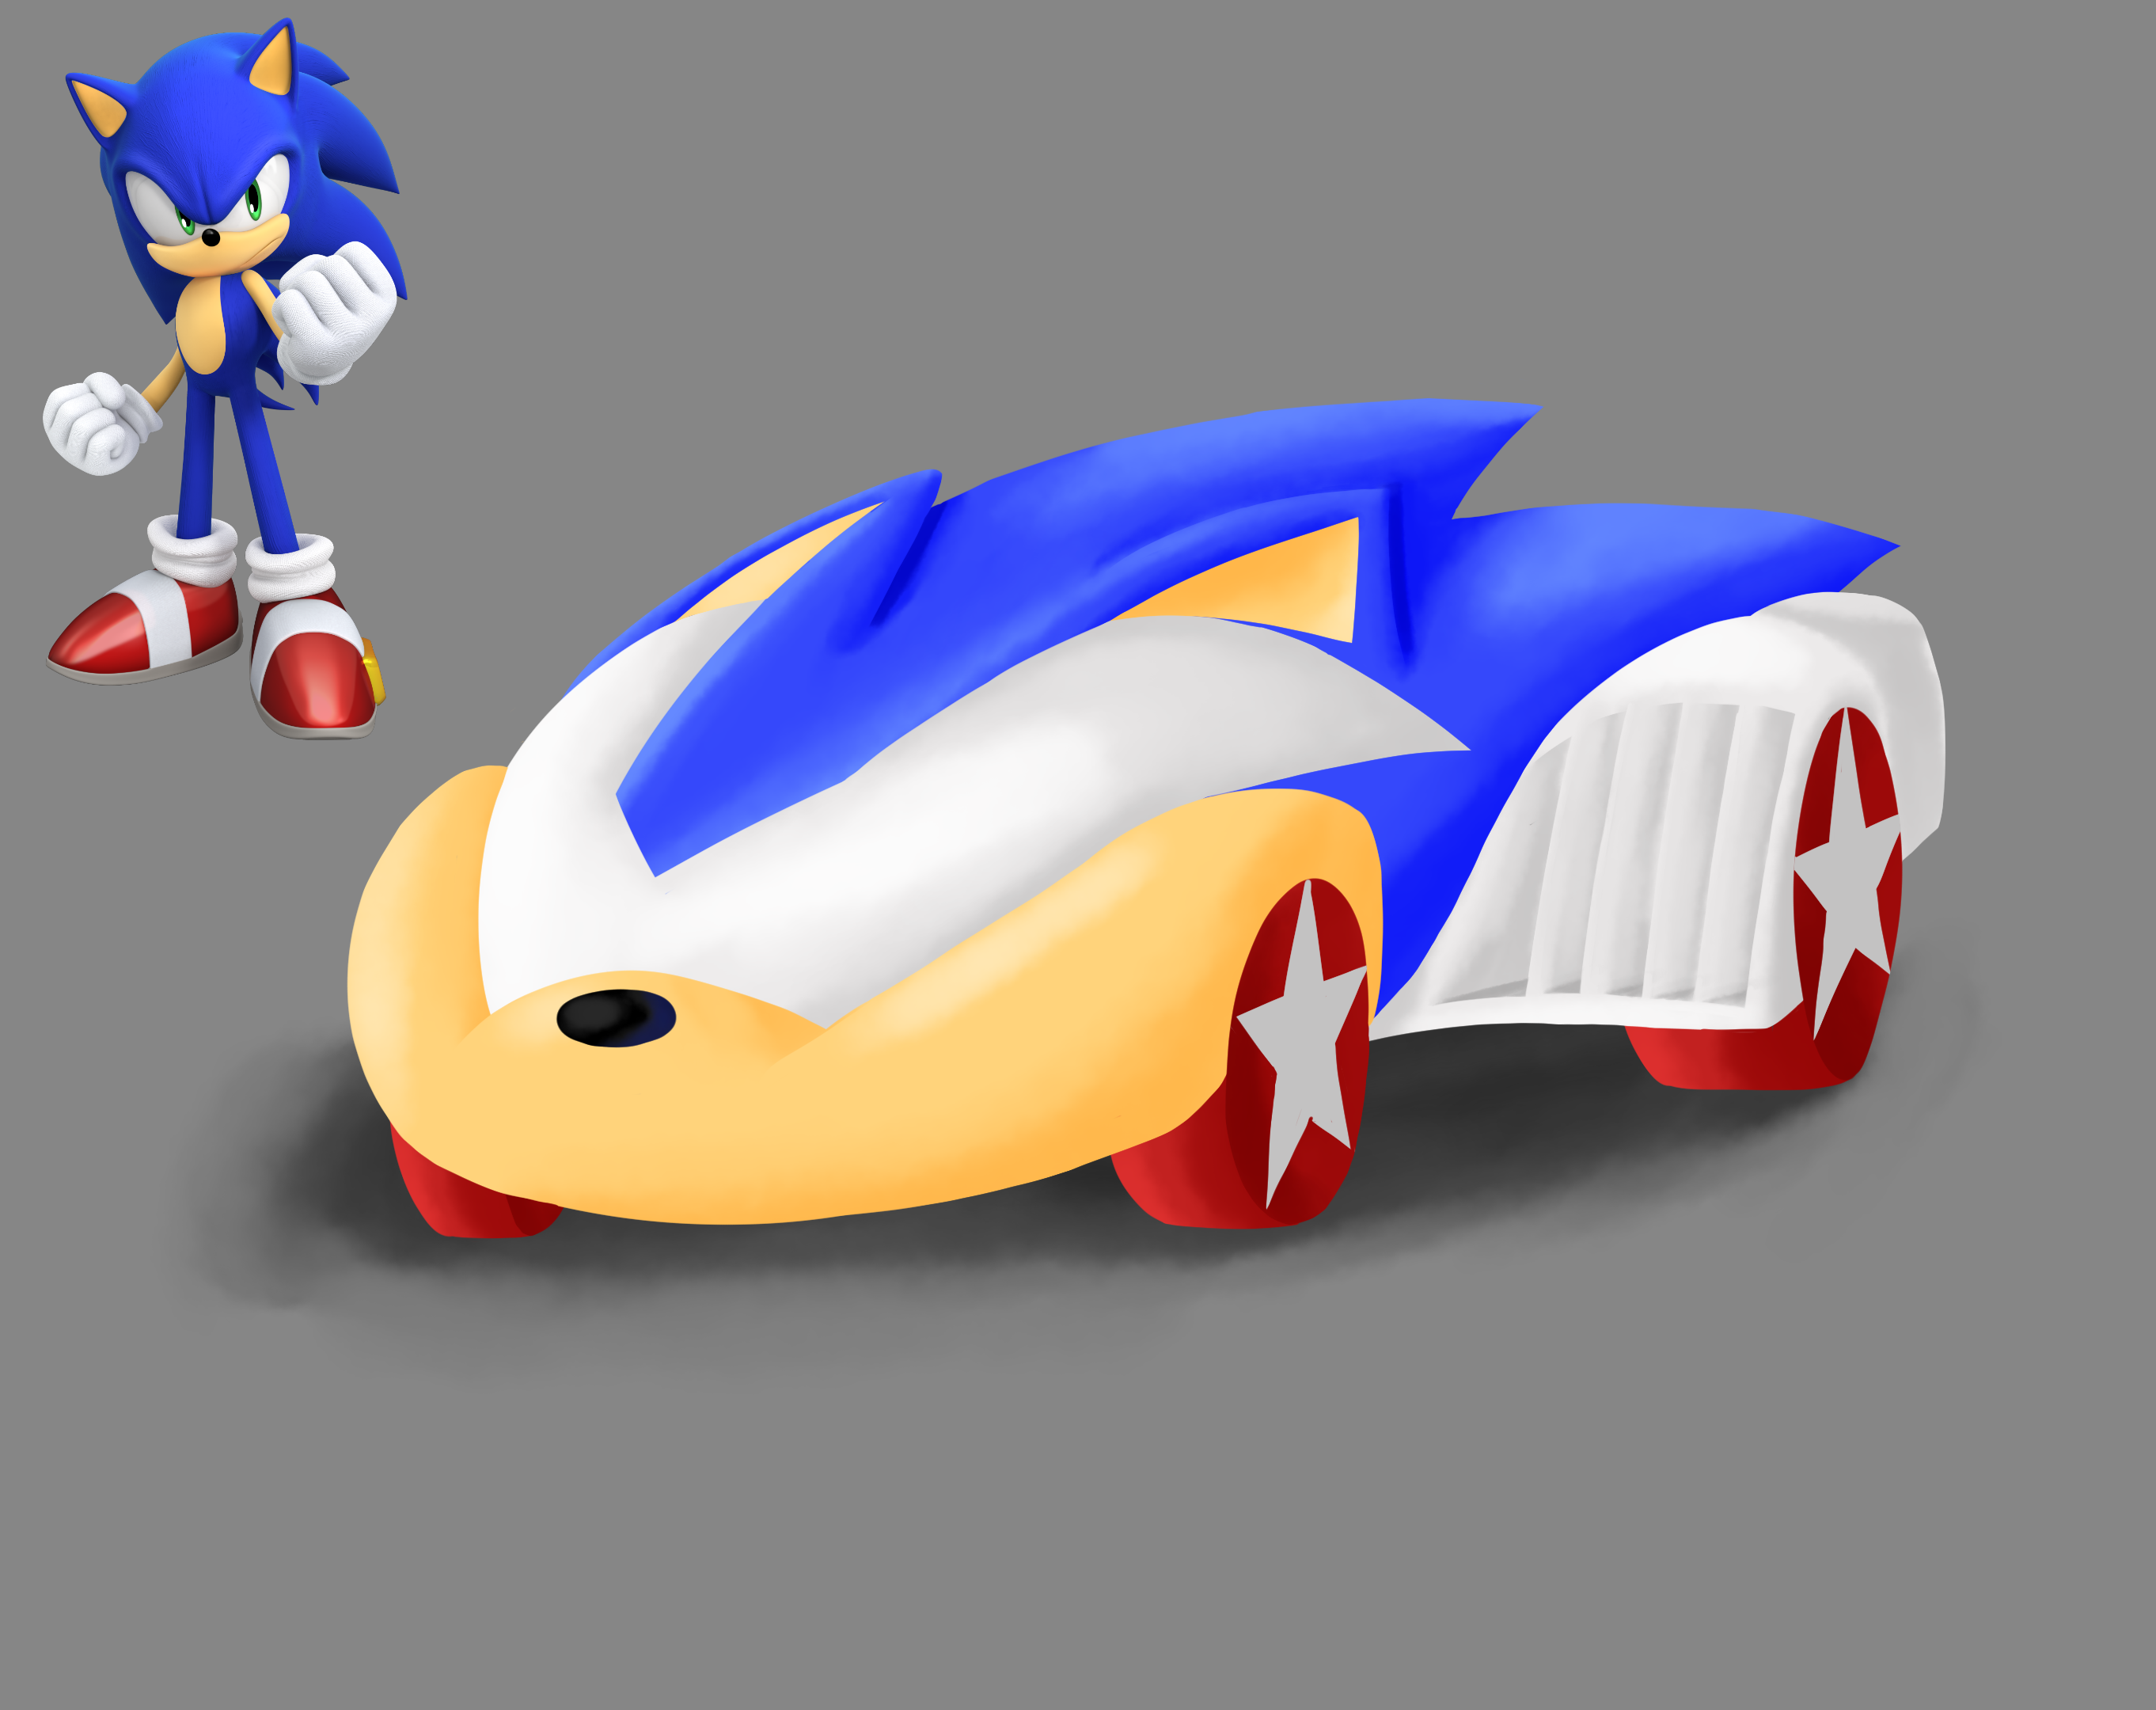 Character Car Concept Sonic The Hedgehog By Sonicbot On Newgrounds